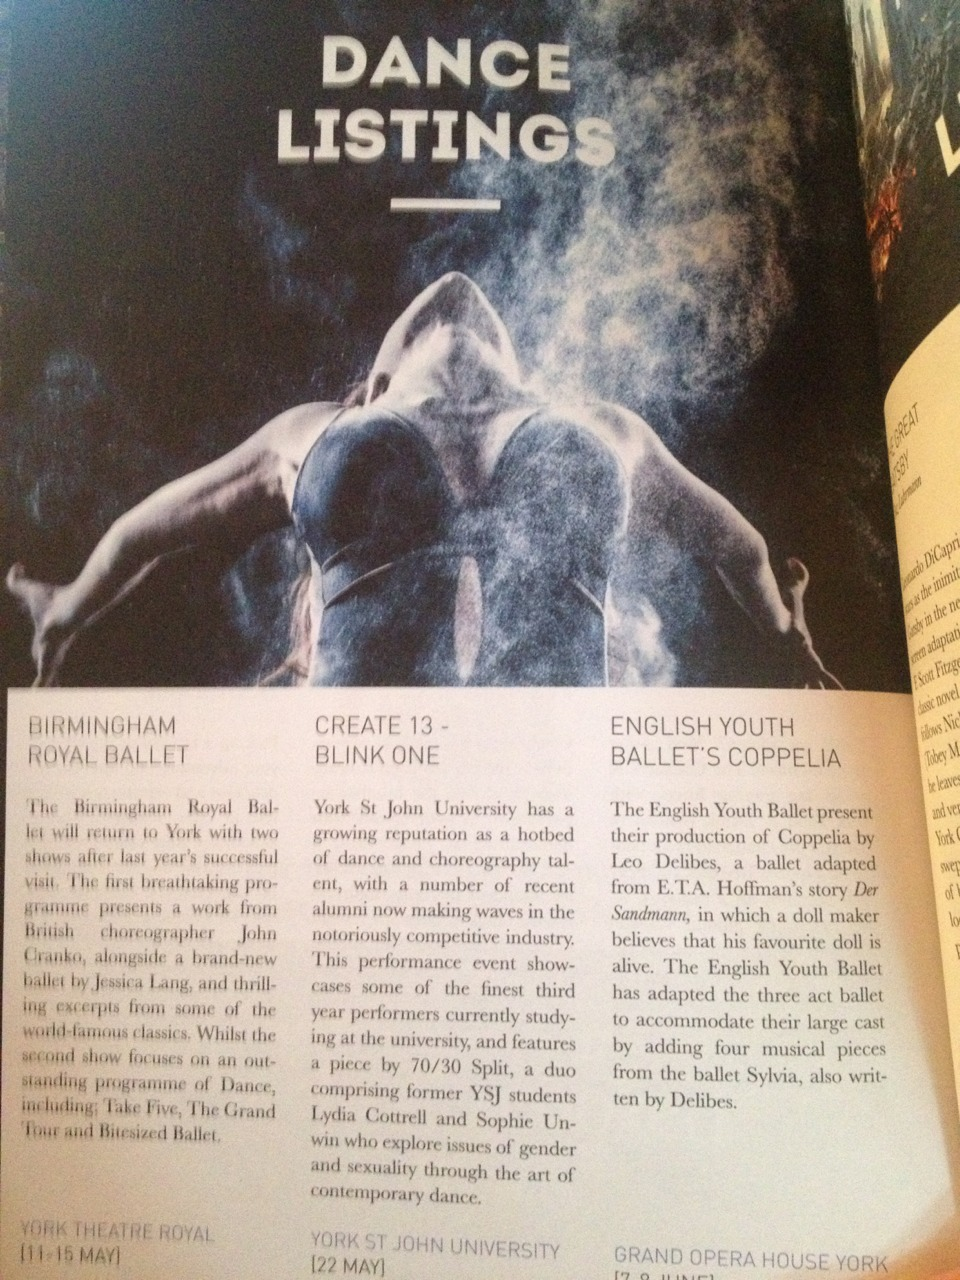 Just spotted 70/30 Split in the Dance Listings in  One&Other  magazine!   Really happy to be doing some performances in our home city.    We will be performing at part of the Create 13 Festival hosted at York St John University. Something new for 70/30 Split is that we will be doing an outdoor performance as part of the Dance Trail on the 21st May it will start at 1pm at York St John University and end at the National Rail Museum.   We will then be showcasing Two do: A performance as part of the Blink One Dance Platform on the 22nd May at 6pm.   Full details of the Dance line-up for the Create 13 festival can be found  here.